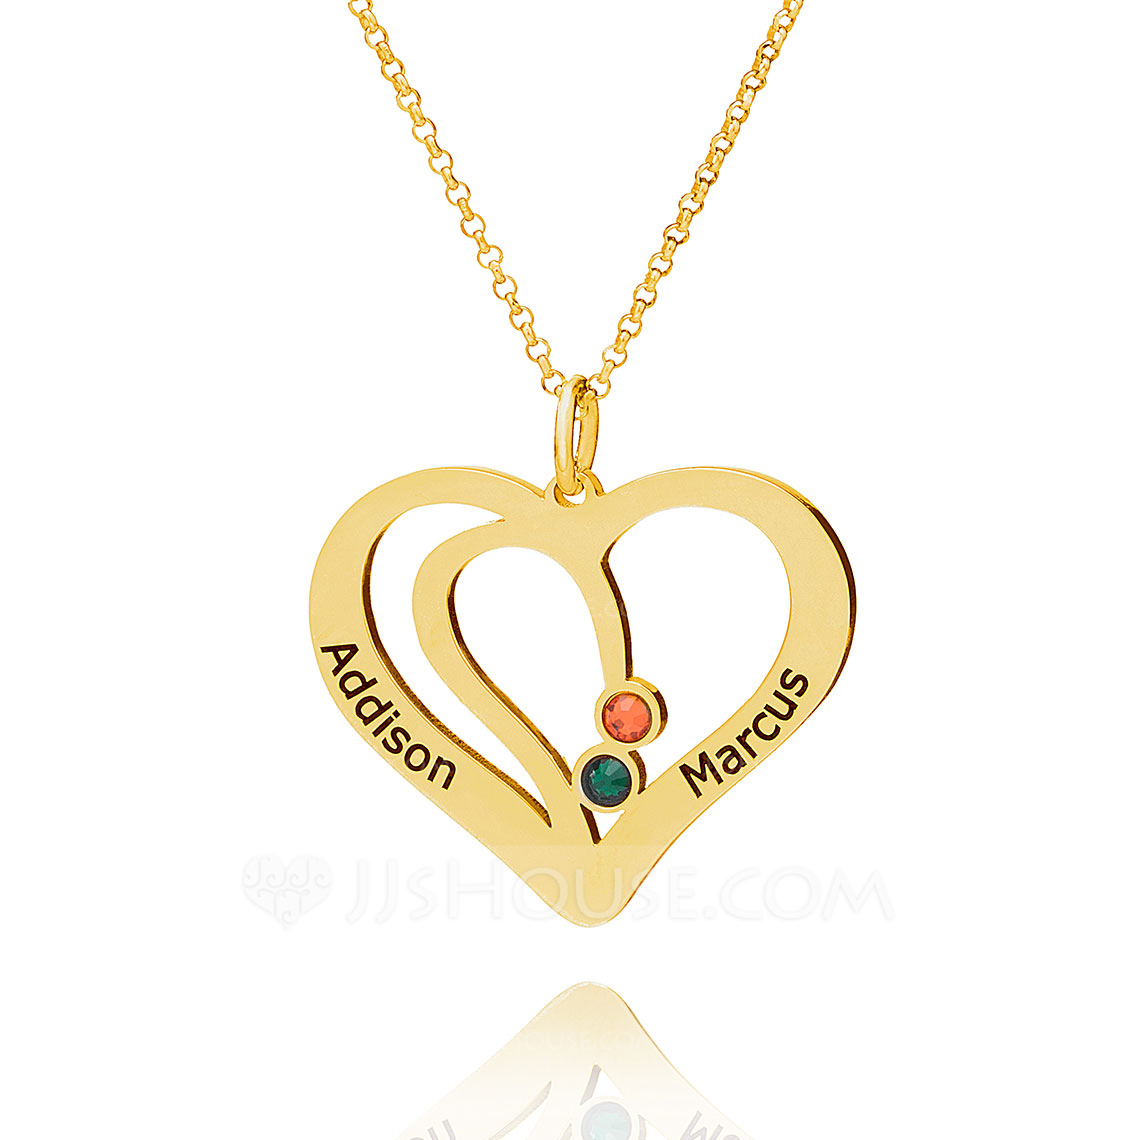 Custom 18k Gold Plated Silver LOVE Overlapping Two Name Necklace Heart Necklace Birthstone Necklace With Birthstone - Birthday Gifts Mother's Day Gifts